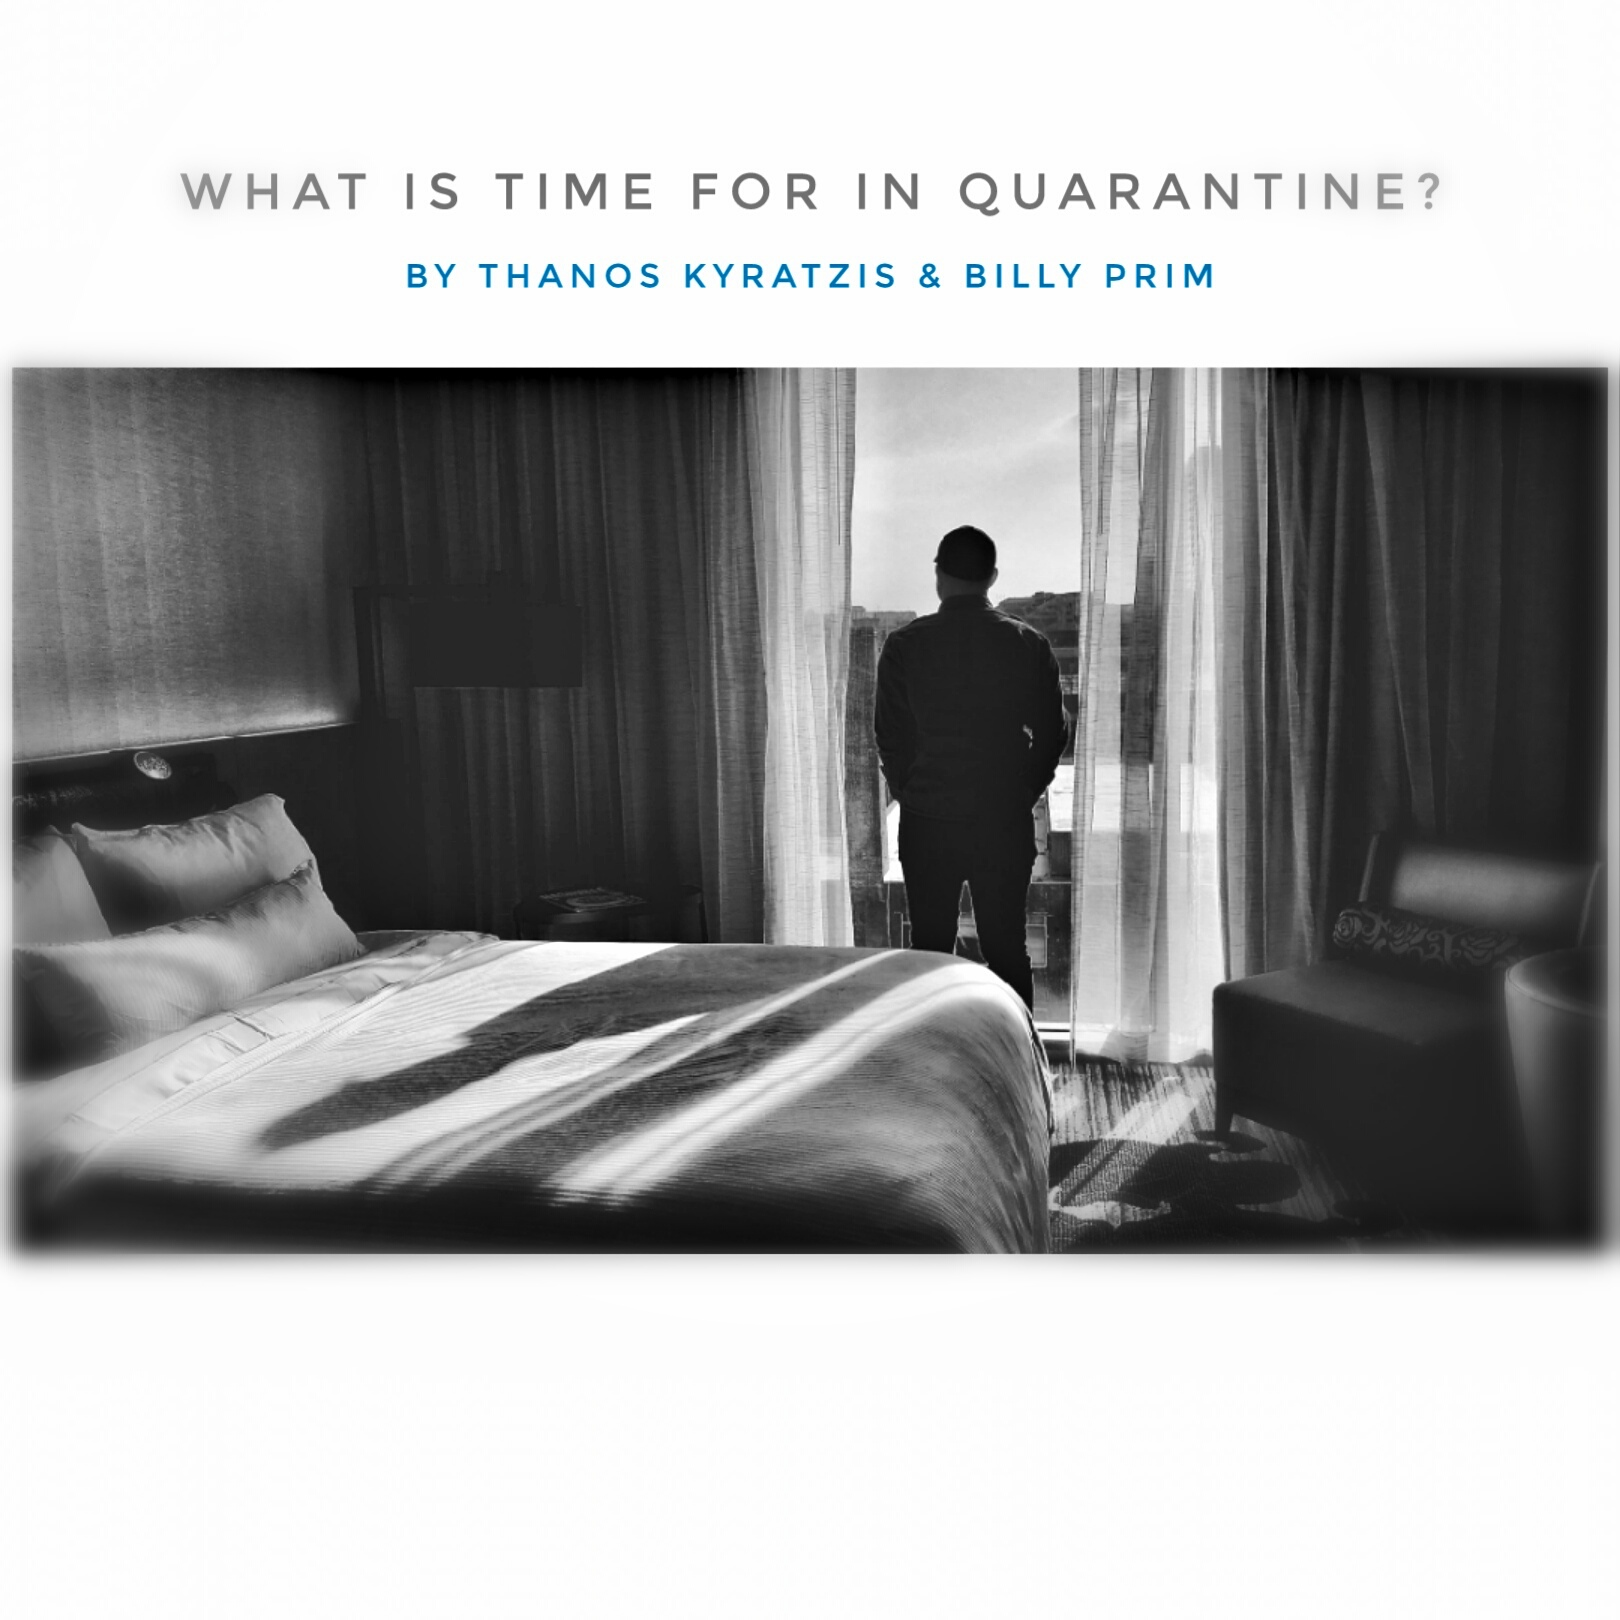 What is time for in quarantine?